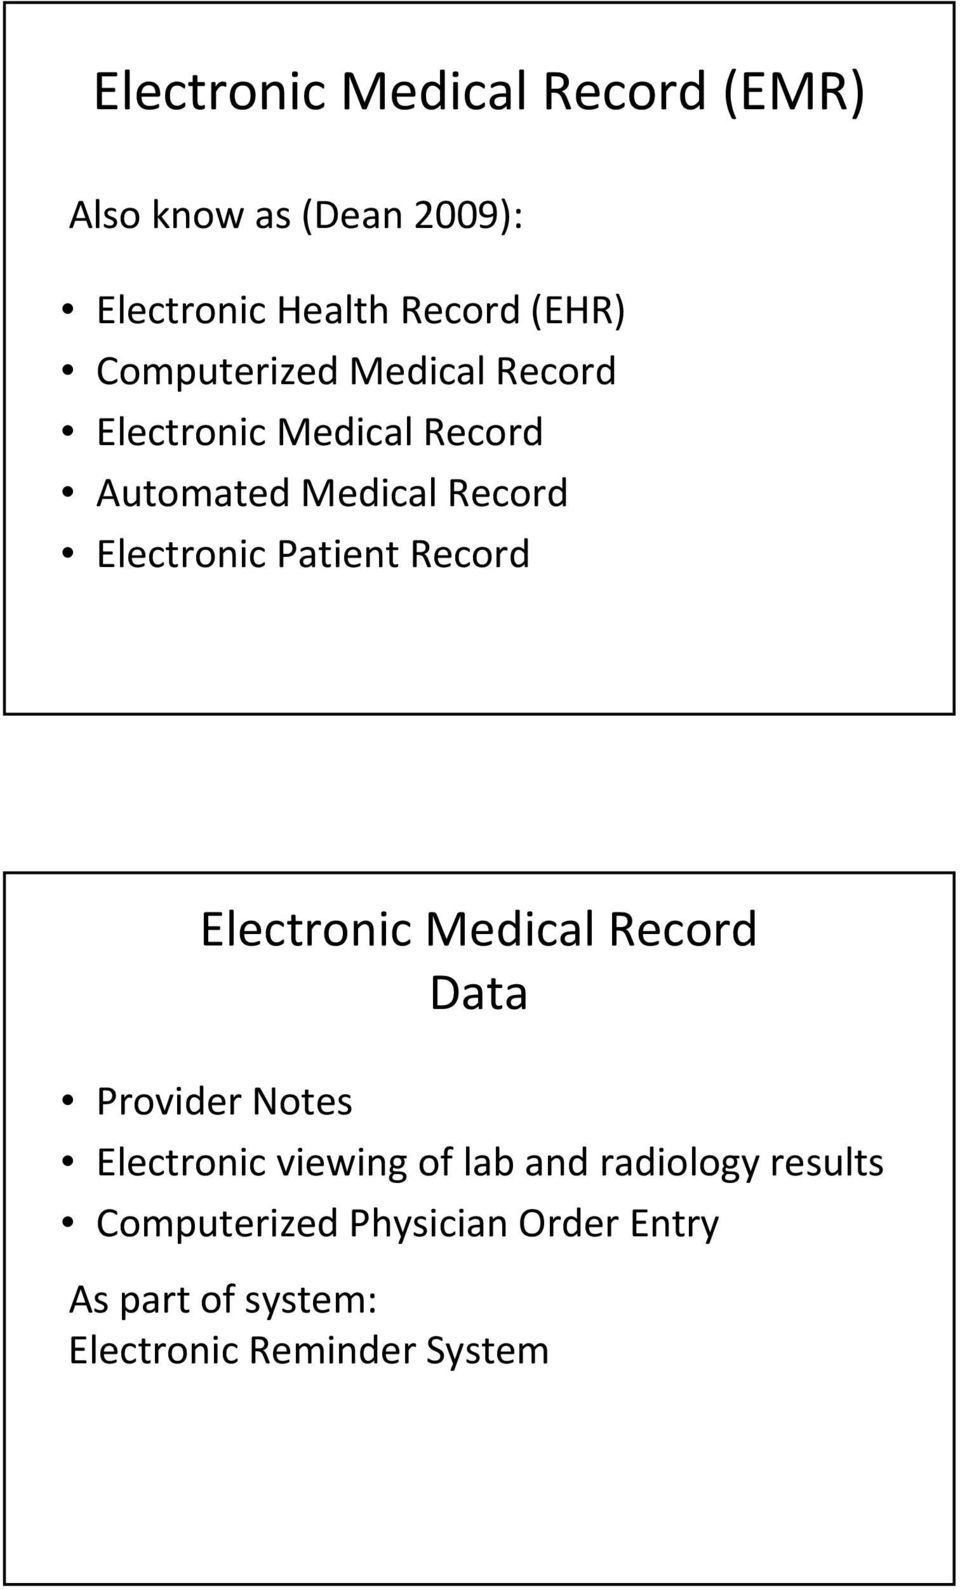 Patient Record Electronic Medical Record Data Provider Notes Electronic viewing of lab and